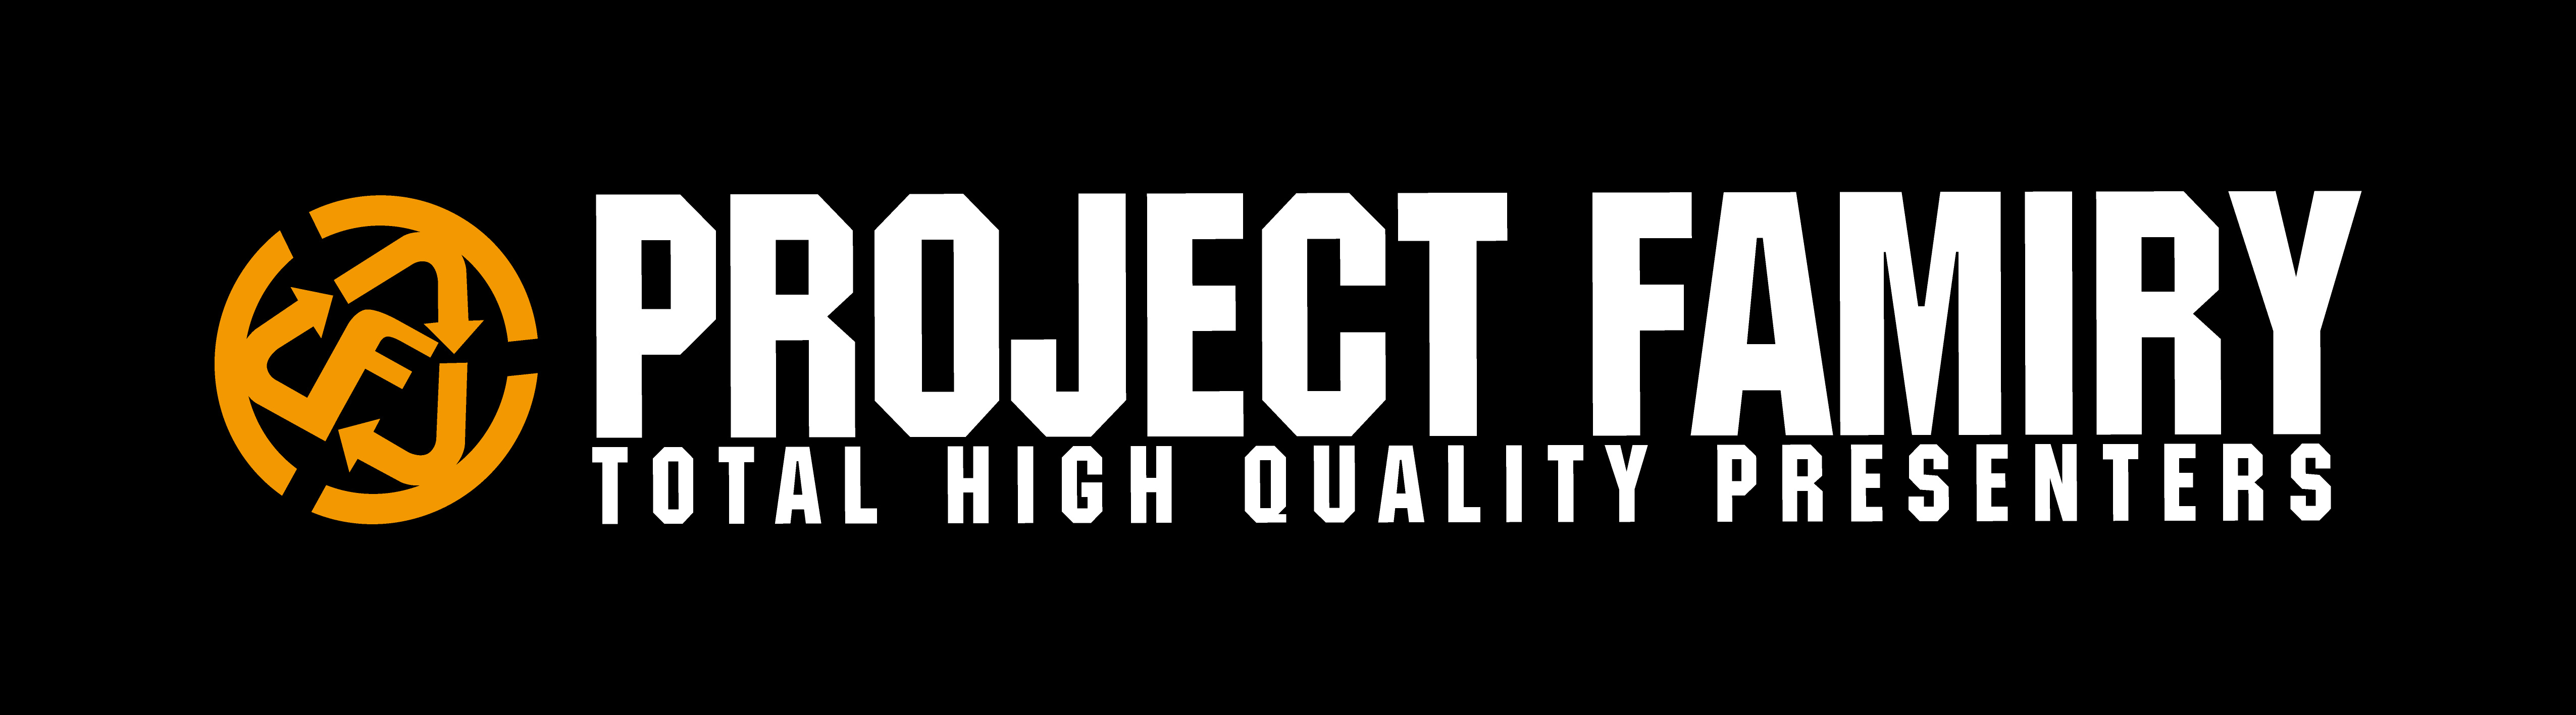 PROJECT FAMIRY